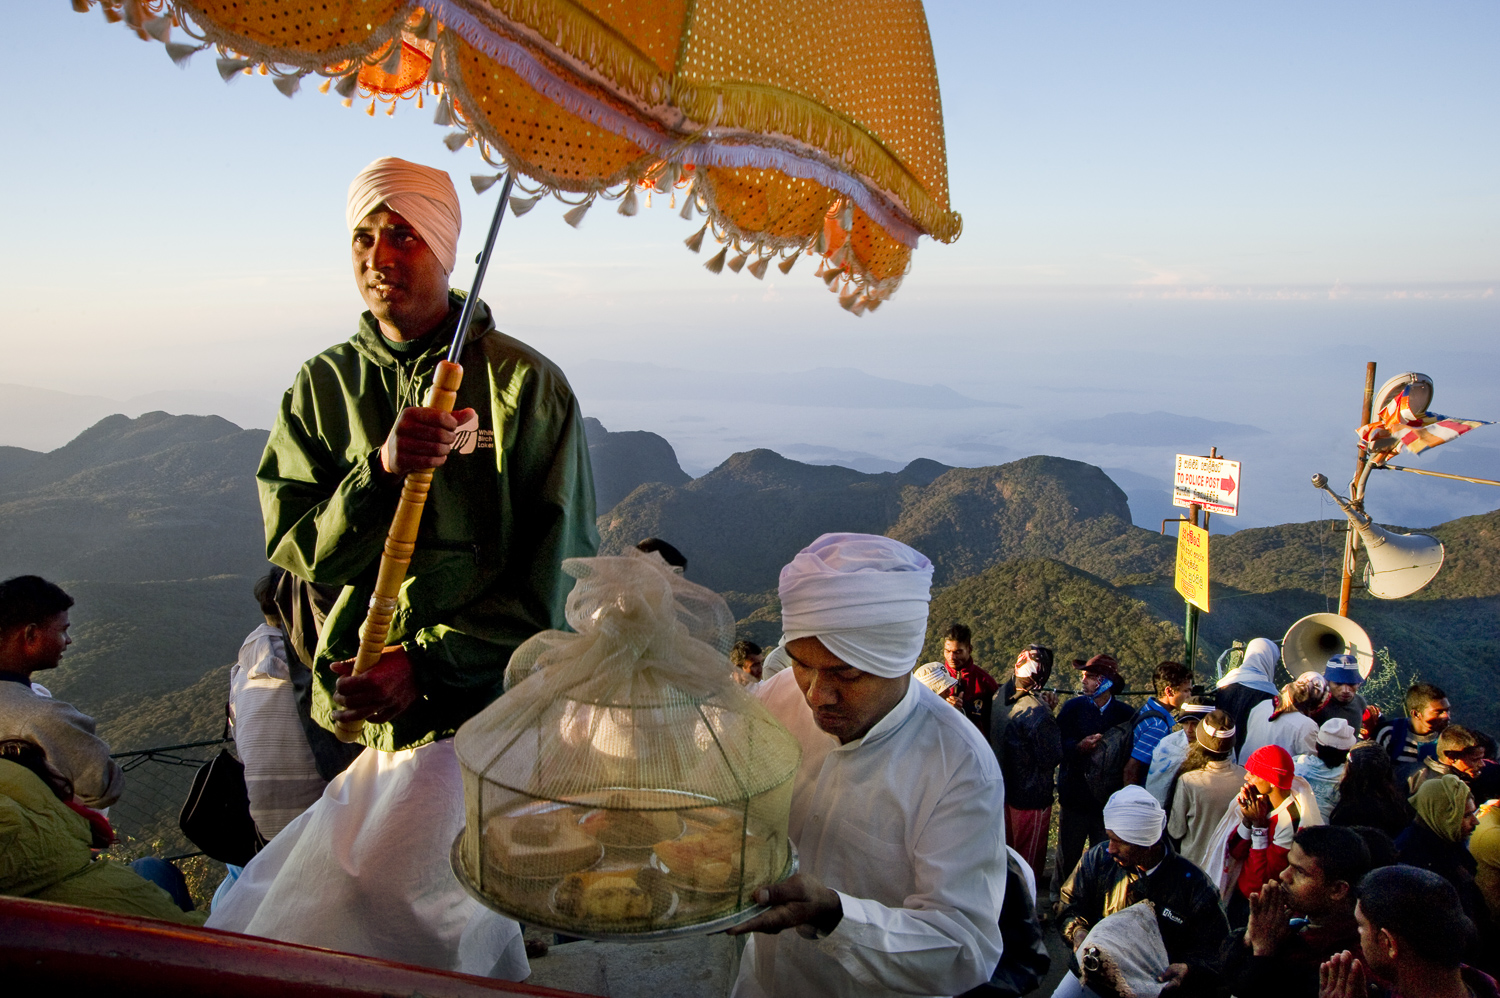 Pilgrims carrying offerings to the top of Adam's peak, a holy site for Sri Lankans of all faiths. While Buddhists believe the rock to be imprinted with the Buddha's footprint, Christians consider the footprint to be of St. Thomas and Muslims see it as Adam's first step outside of paradise. With the rock visible from sea and visited early on by the likes of Marco Polo and Ibn Battuta, the peak has near mythic status for Sri Lankans.